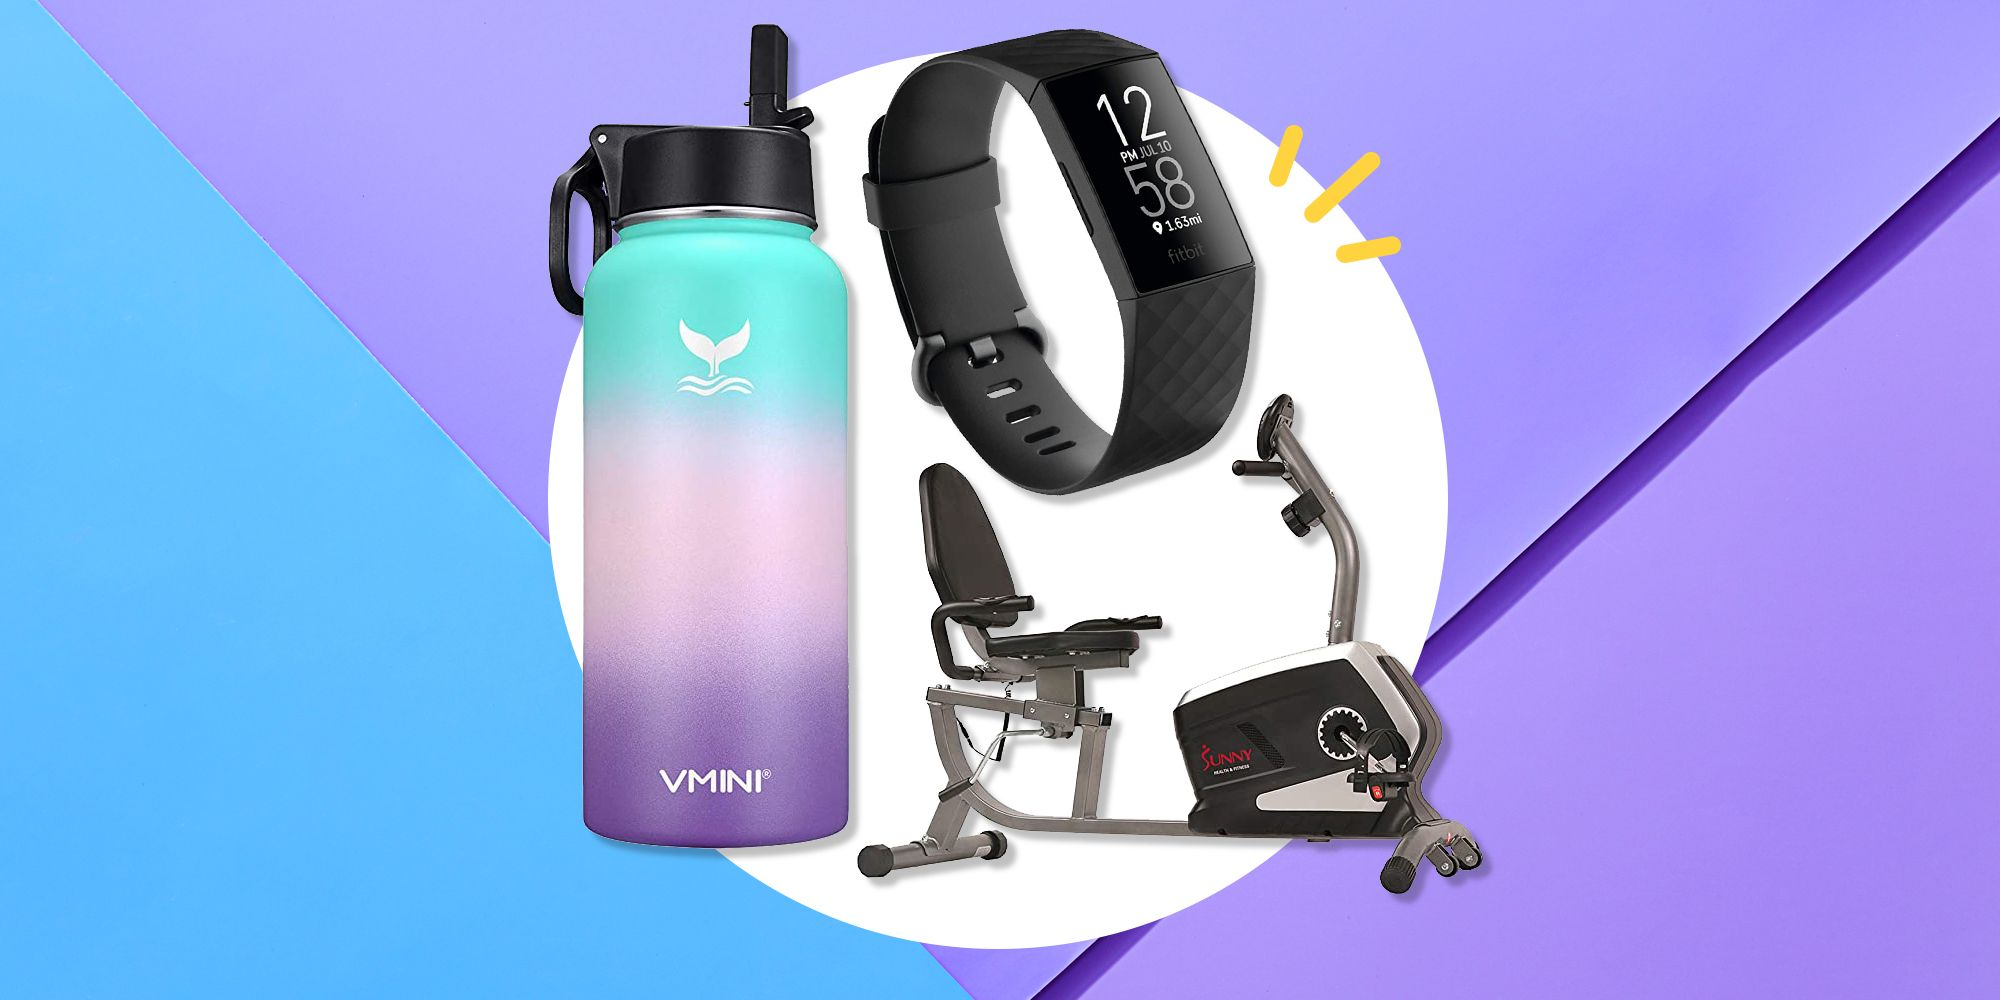 Amazon Prime Day 2021 Is Coming, But They Secretly Dropped Some Amazing Fitness Sales Early